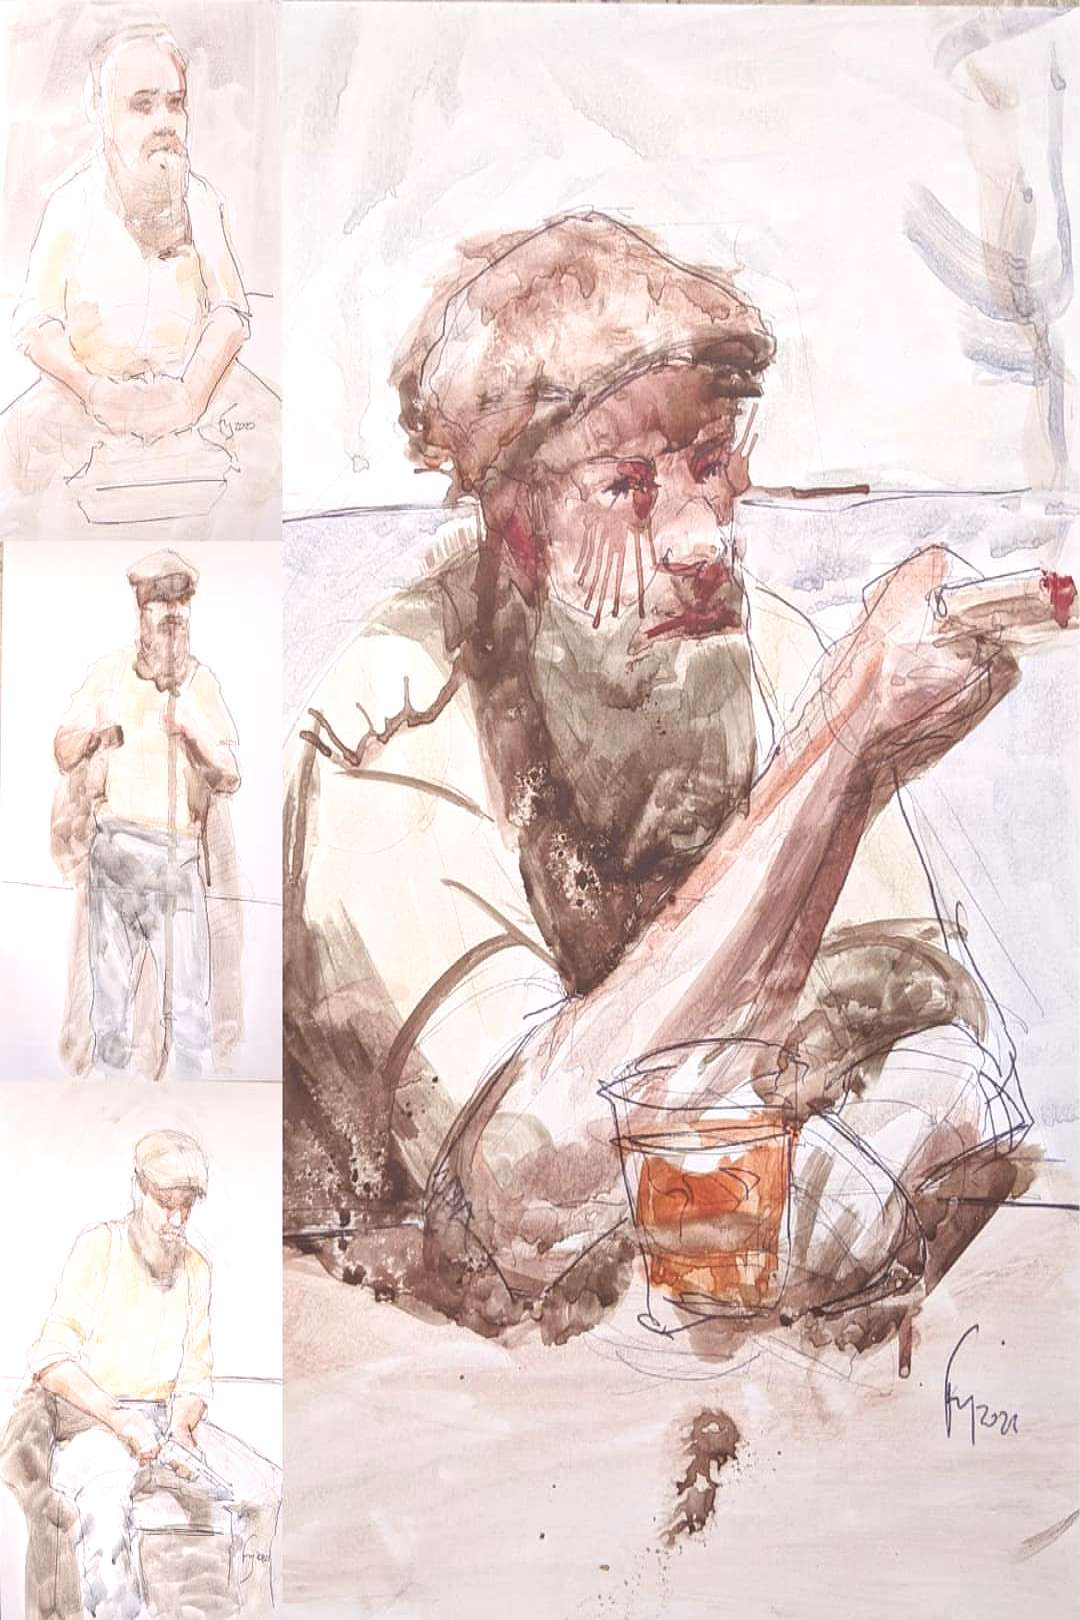 5 to 30 minutes rollerball and watercolor sketches. Thanks for or